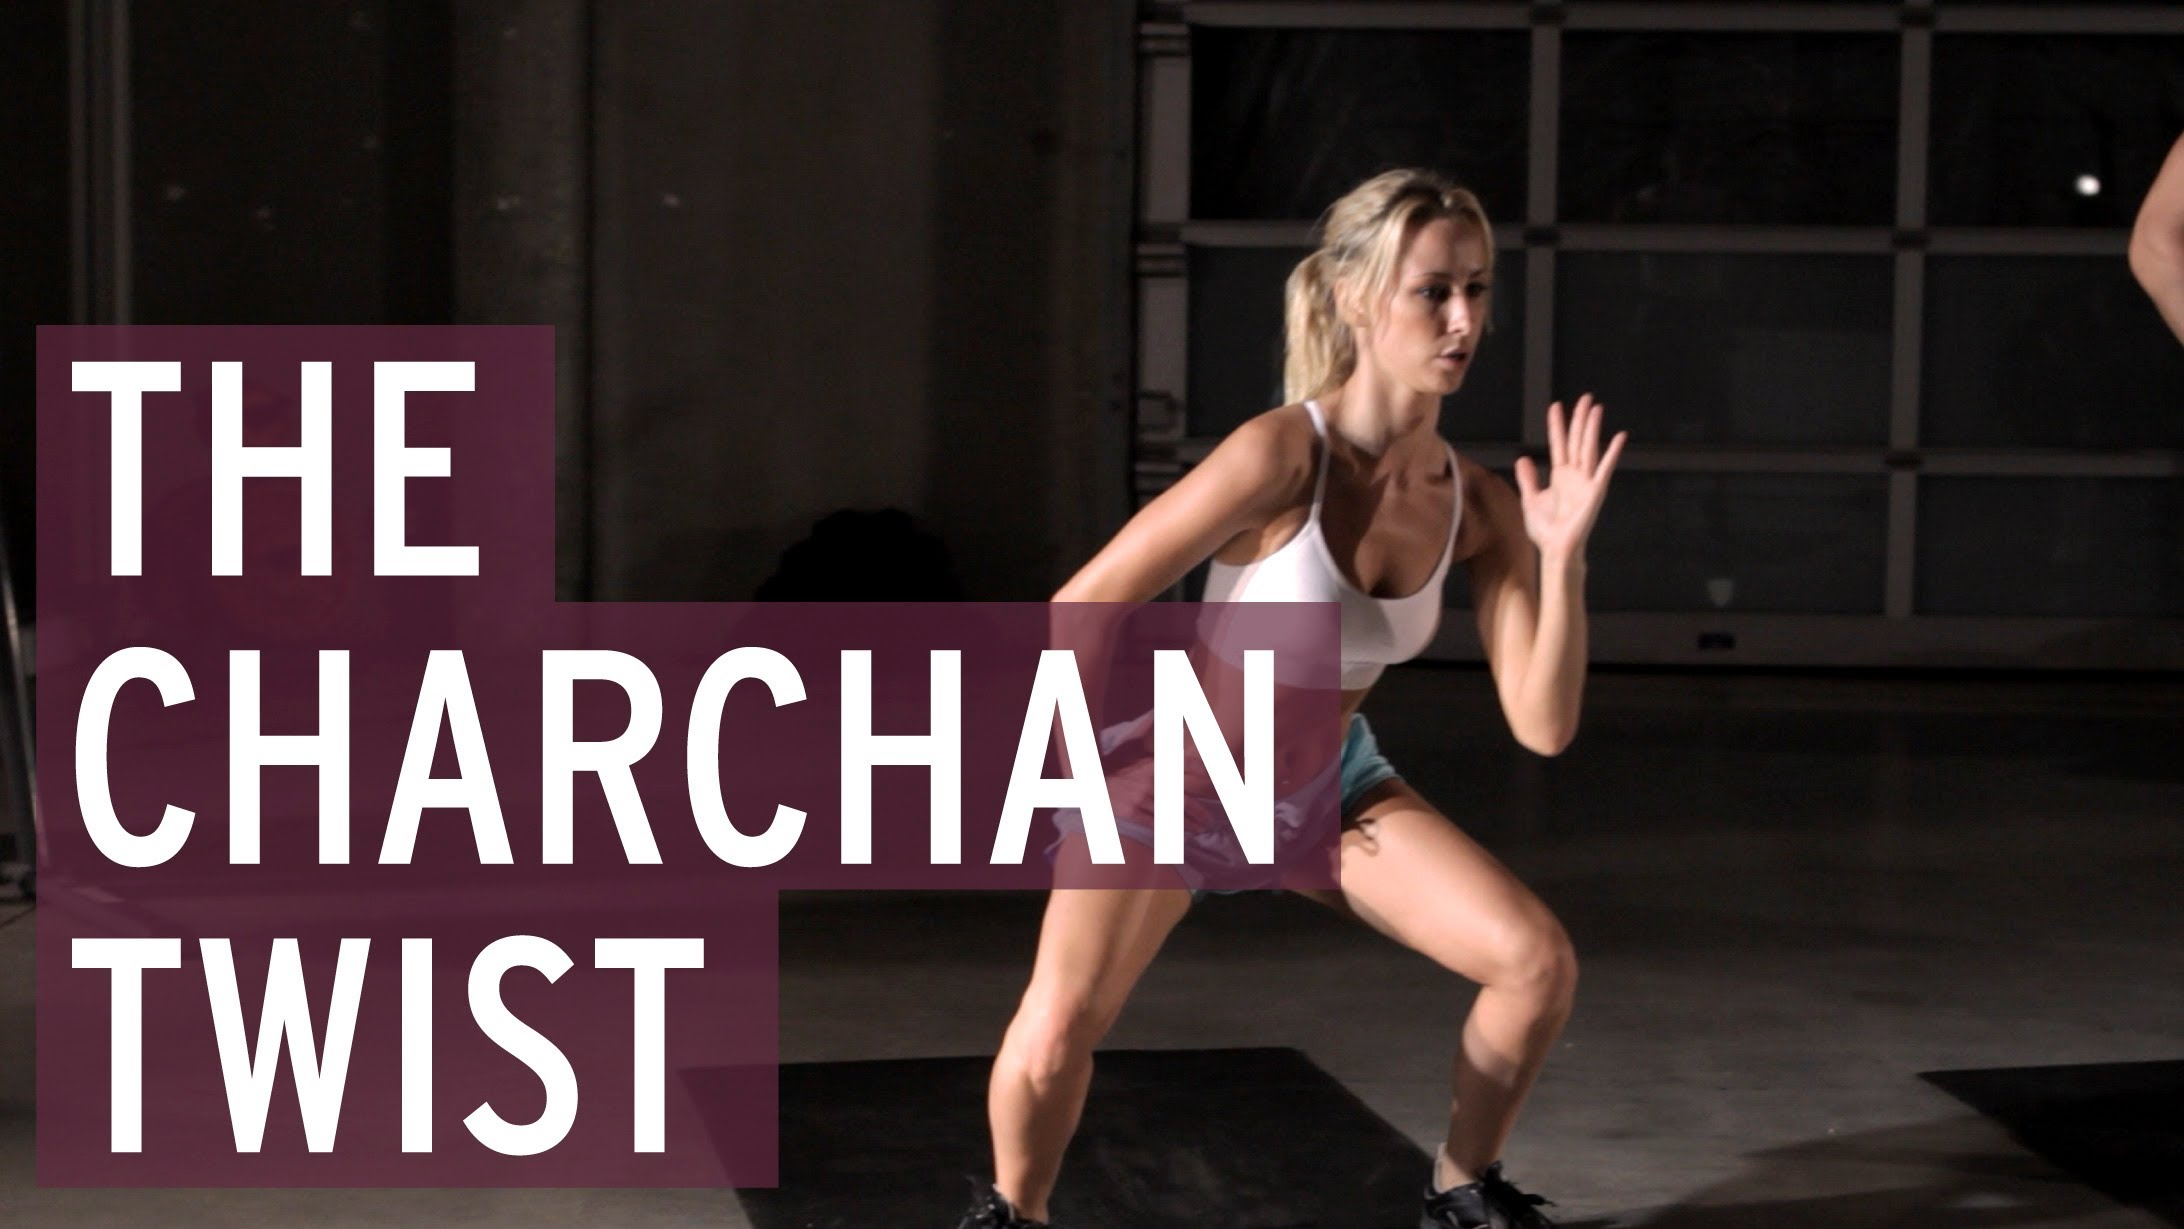 Work out! The Charchan Twist